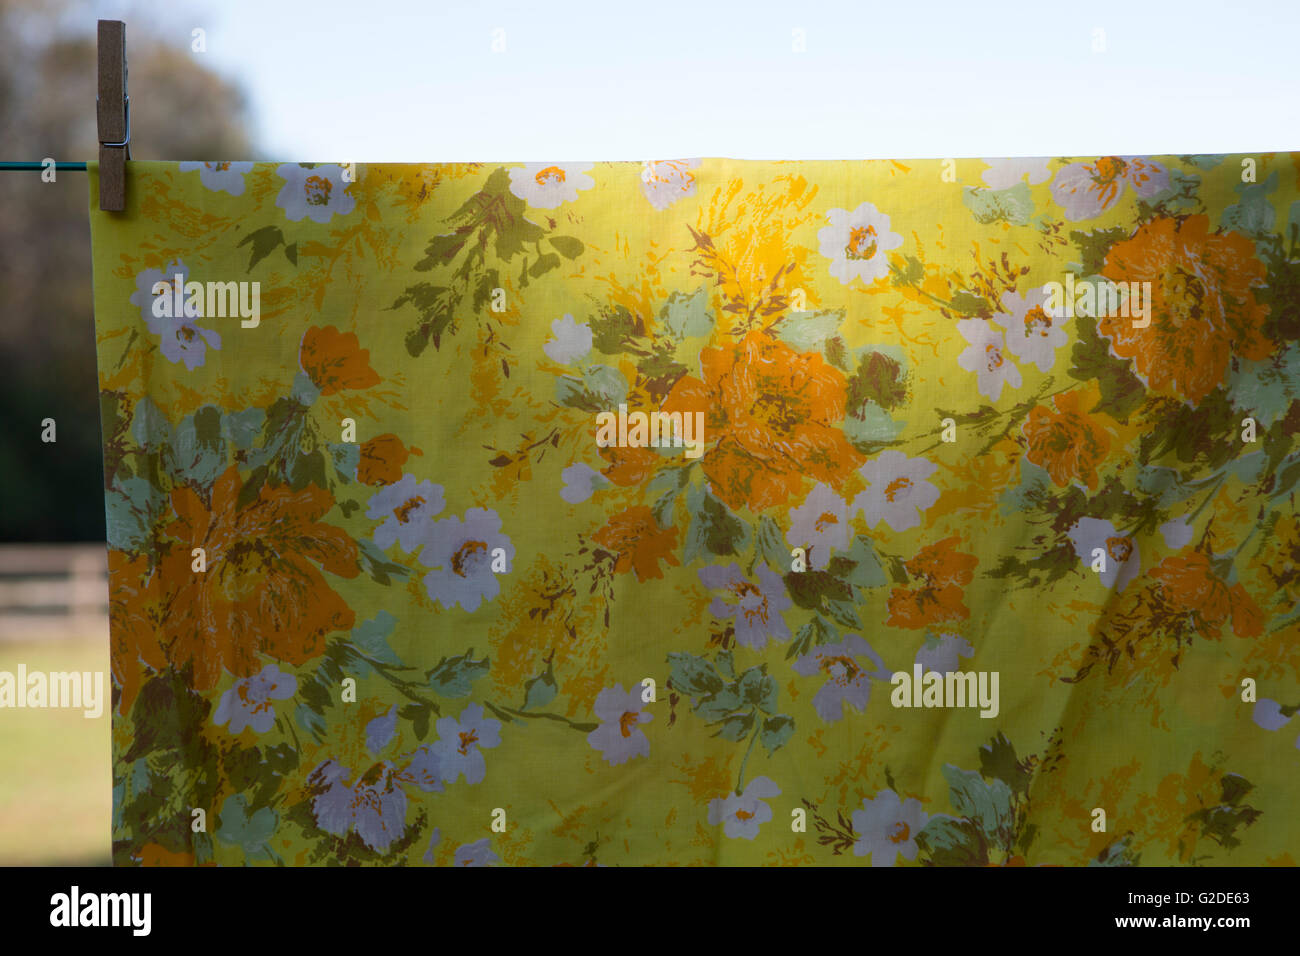 Yellow Floral Sheet Hanging on Clothesline - Stock Image